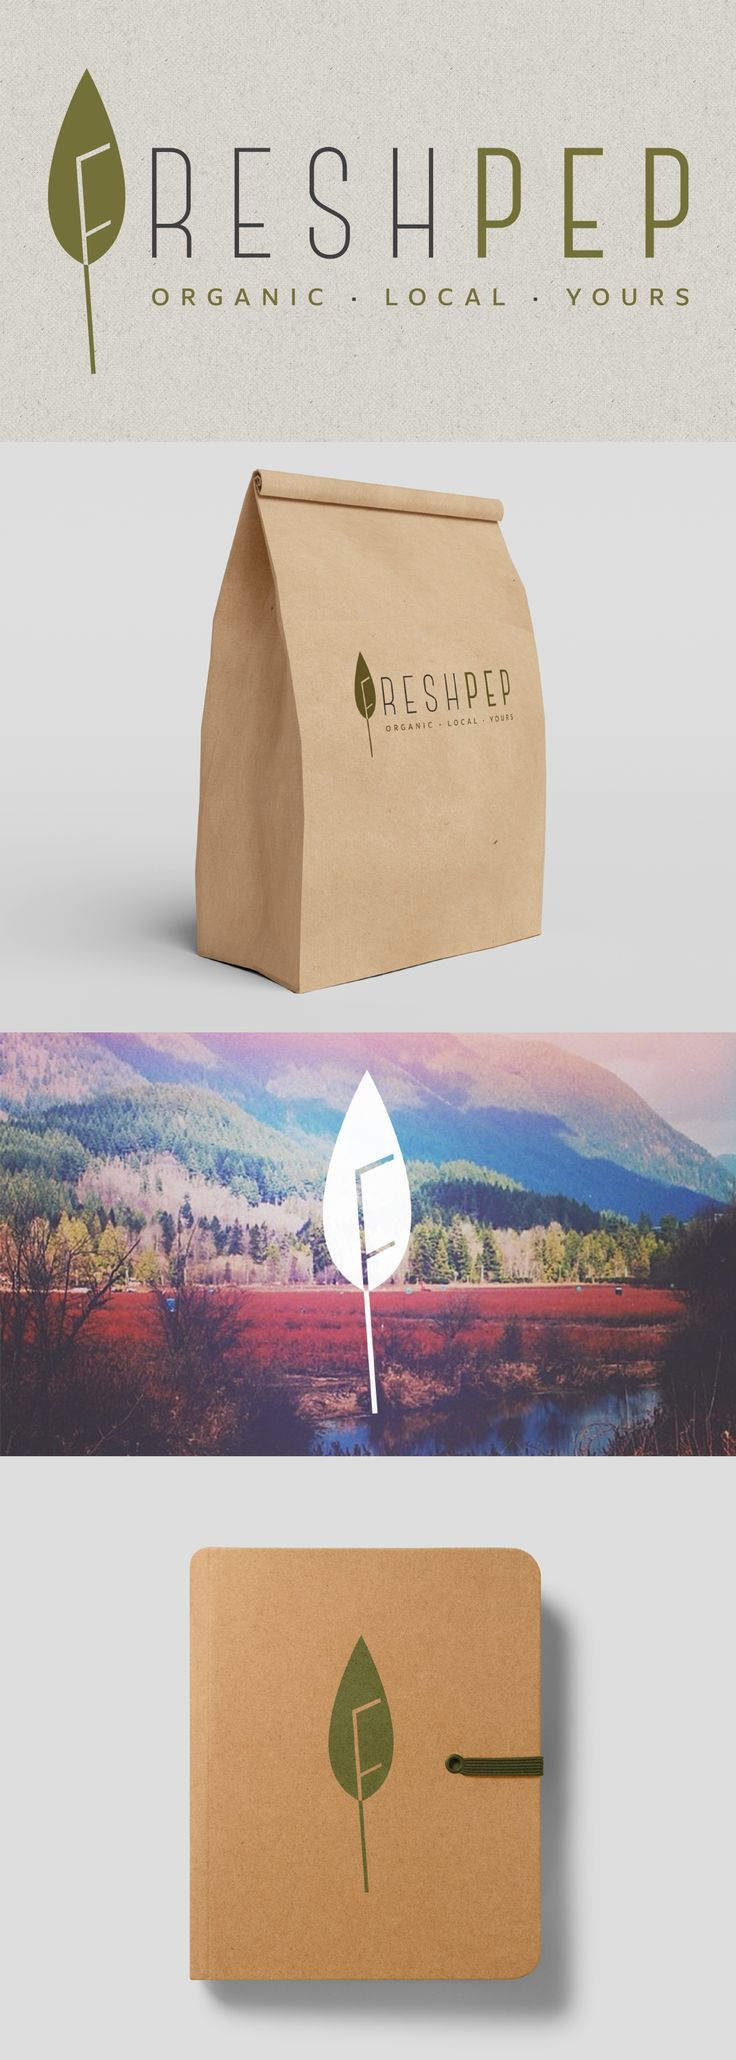 "The goal of this logo design and branding project for Freshpep, an online grocery store for health-conscious consumers, was to convey the organic and natural aspect of in-store product selection right away. The ""leaf + F"" idea helps to build a recognizable and memorable brand mark. We chose to use craft paper to communicate the warm and traditional spirit of the brand."